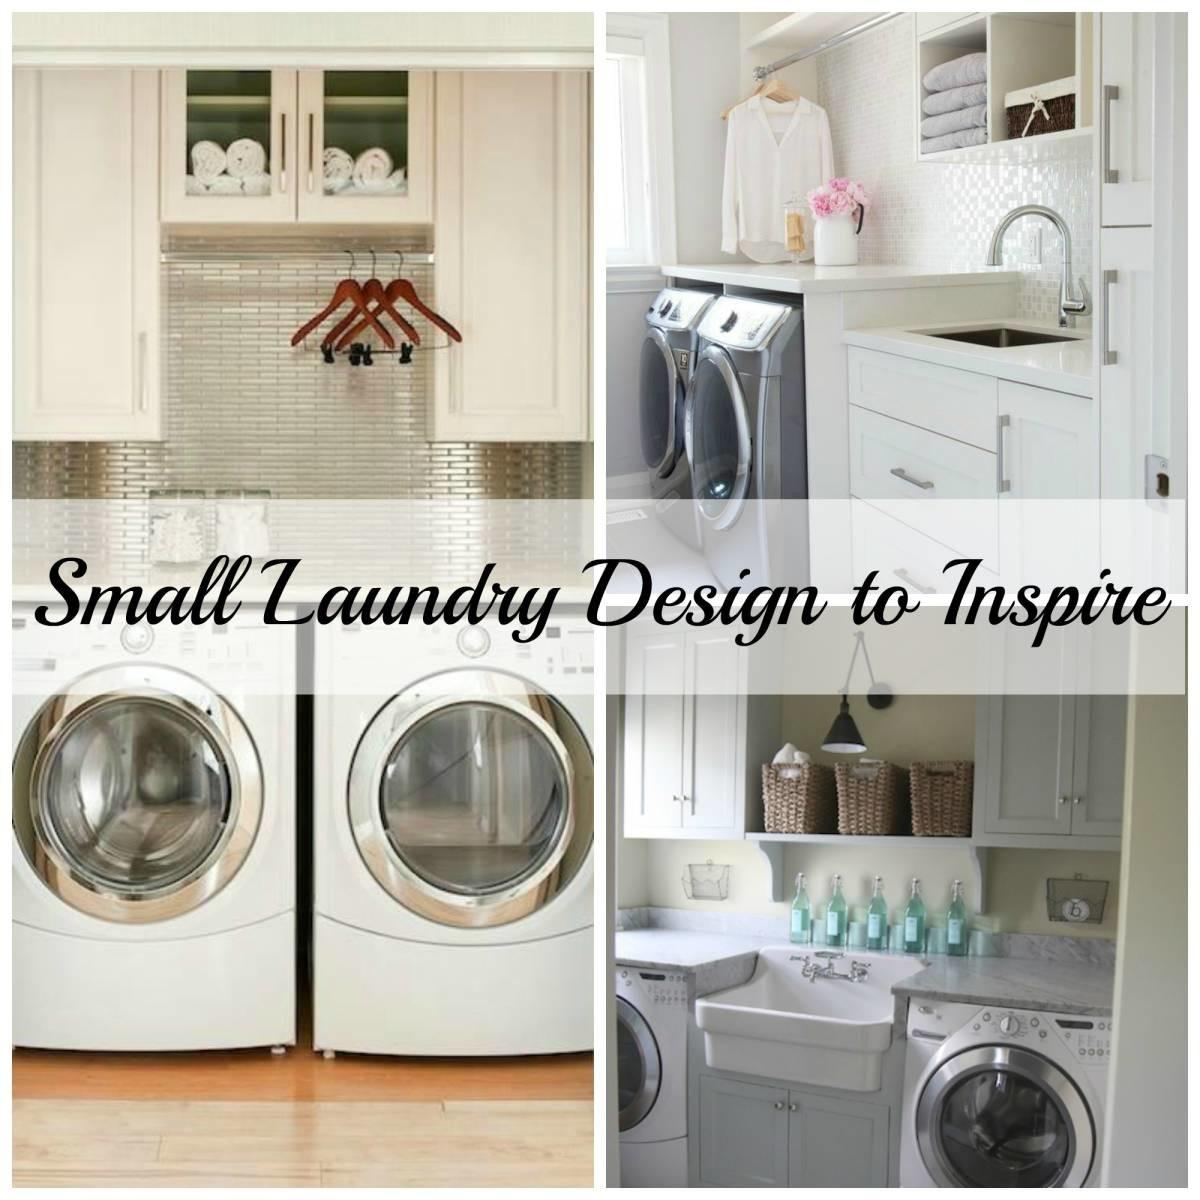 Small Laundry Designs Inspired Space Builder Wife